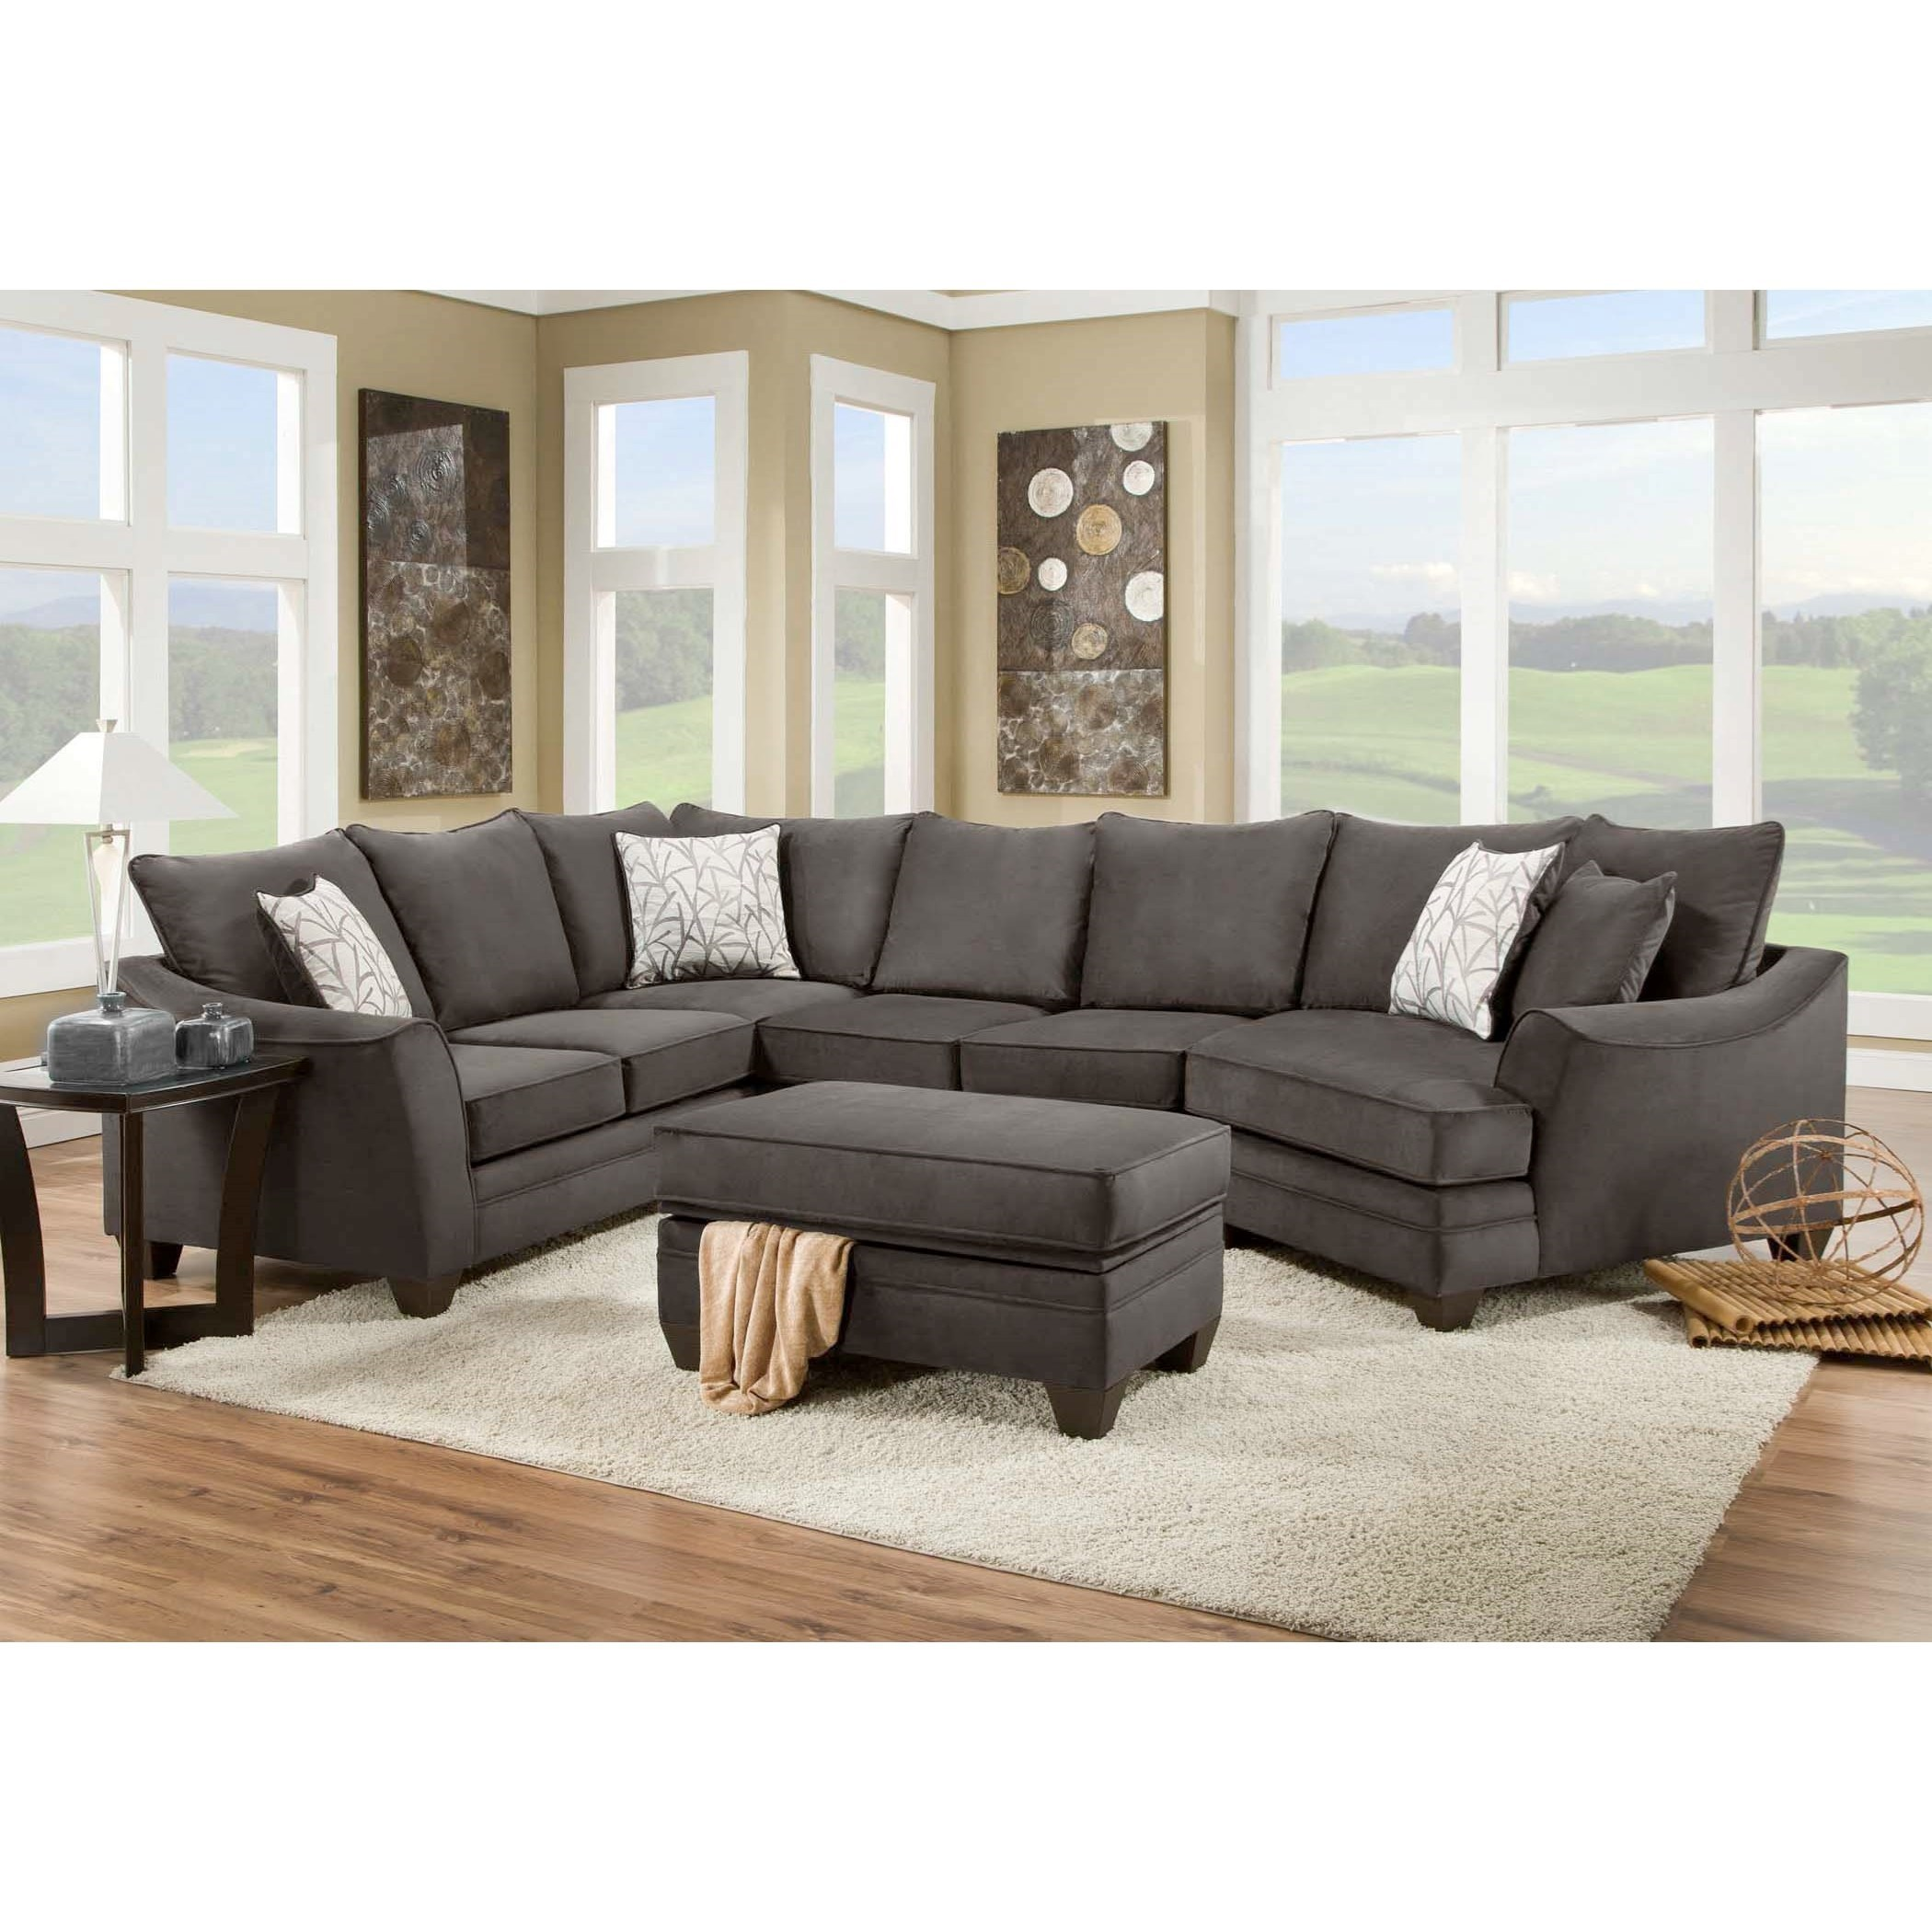 Genial American Furniture 3810 Sectional Sofa That Seats 5 With Right Side Cuddler